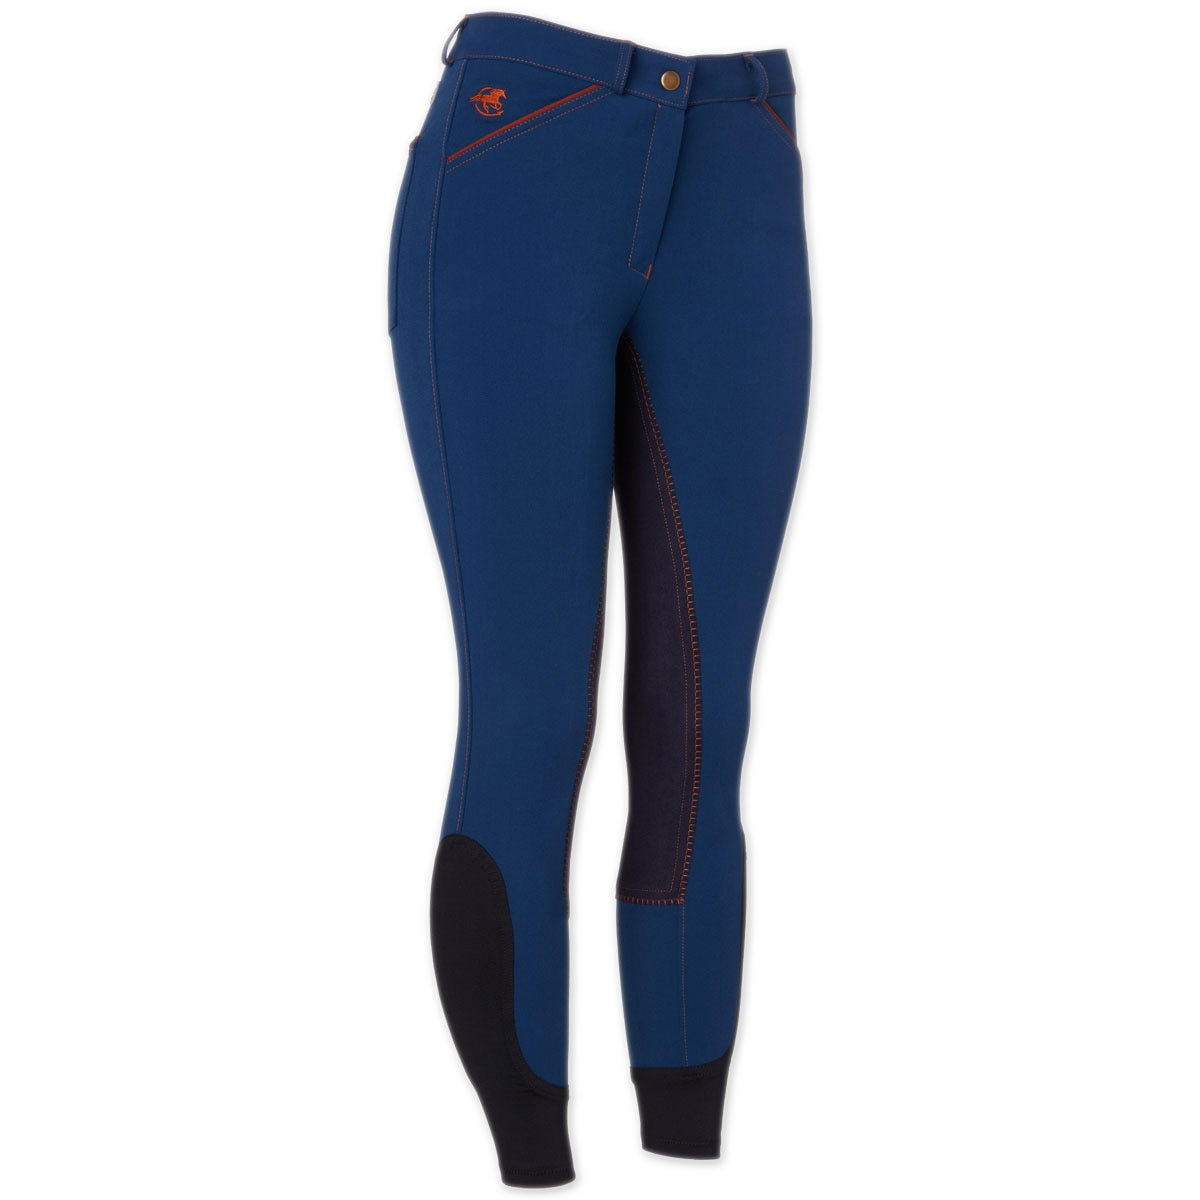 Piper Breeches by SmartPak - Mid Rise Full Seat - Sale!